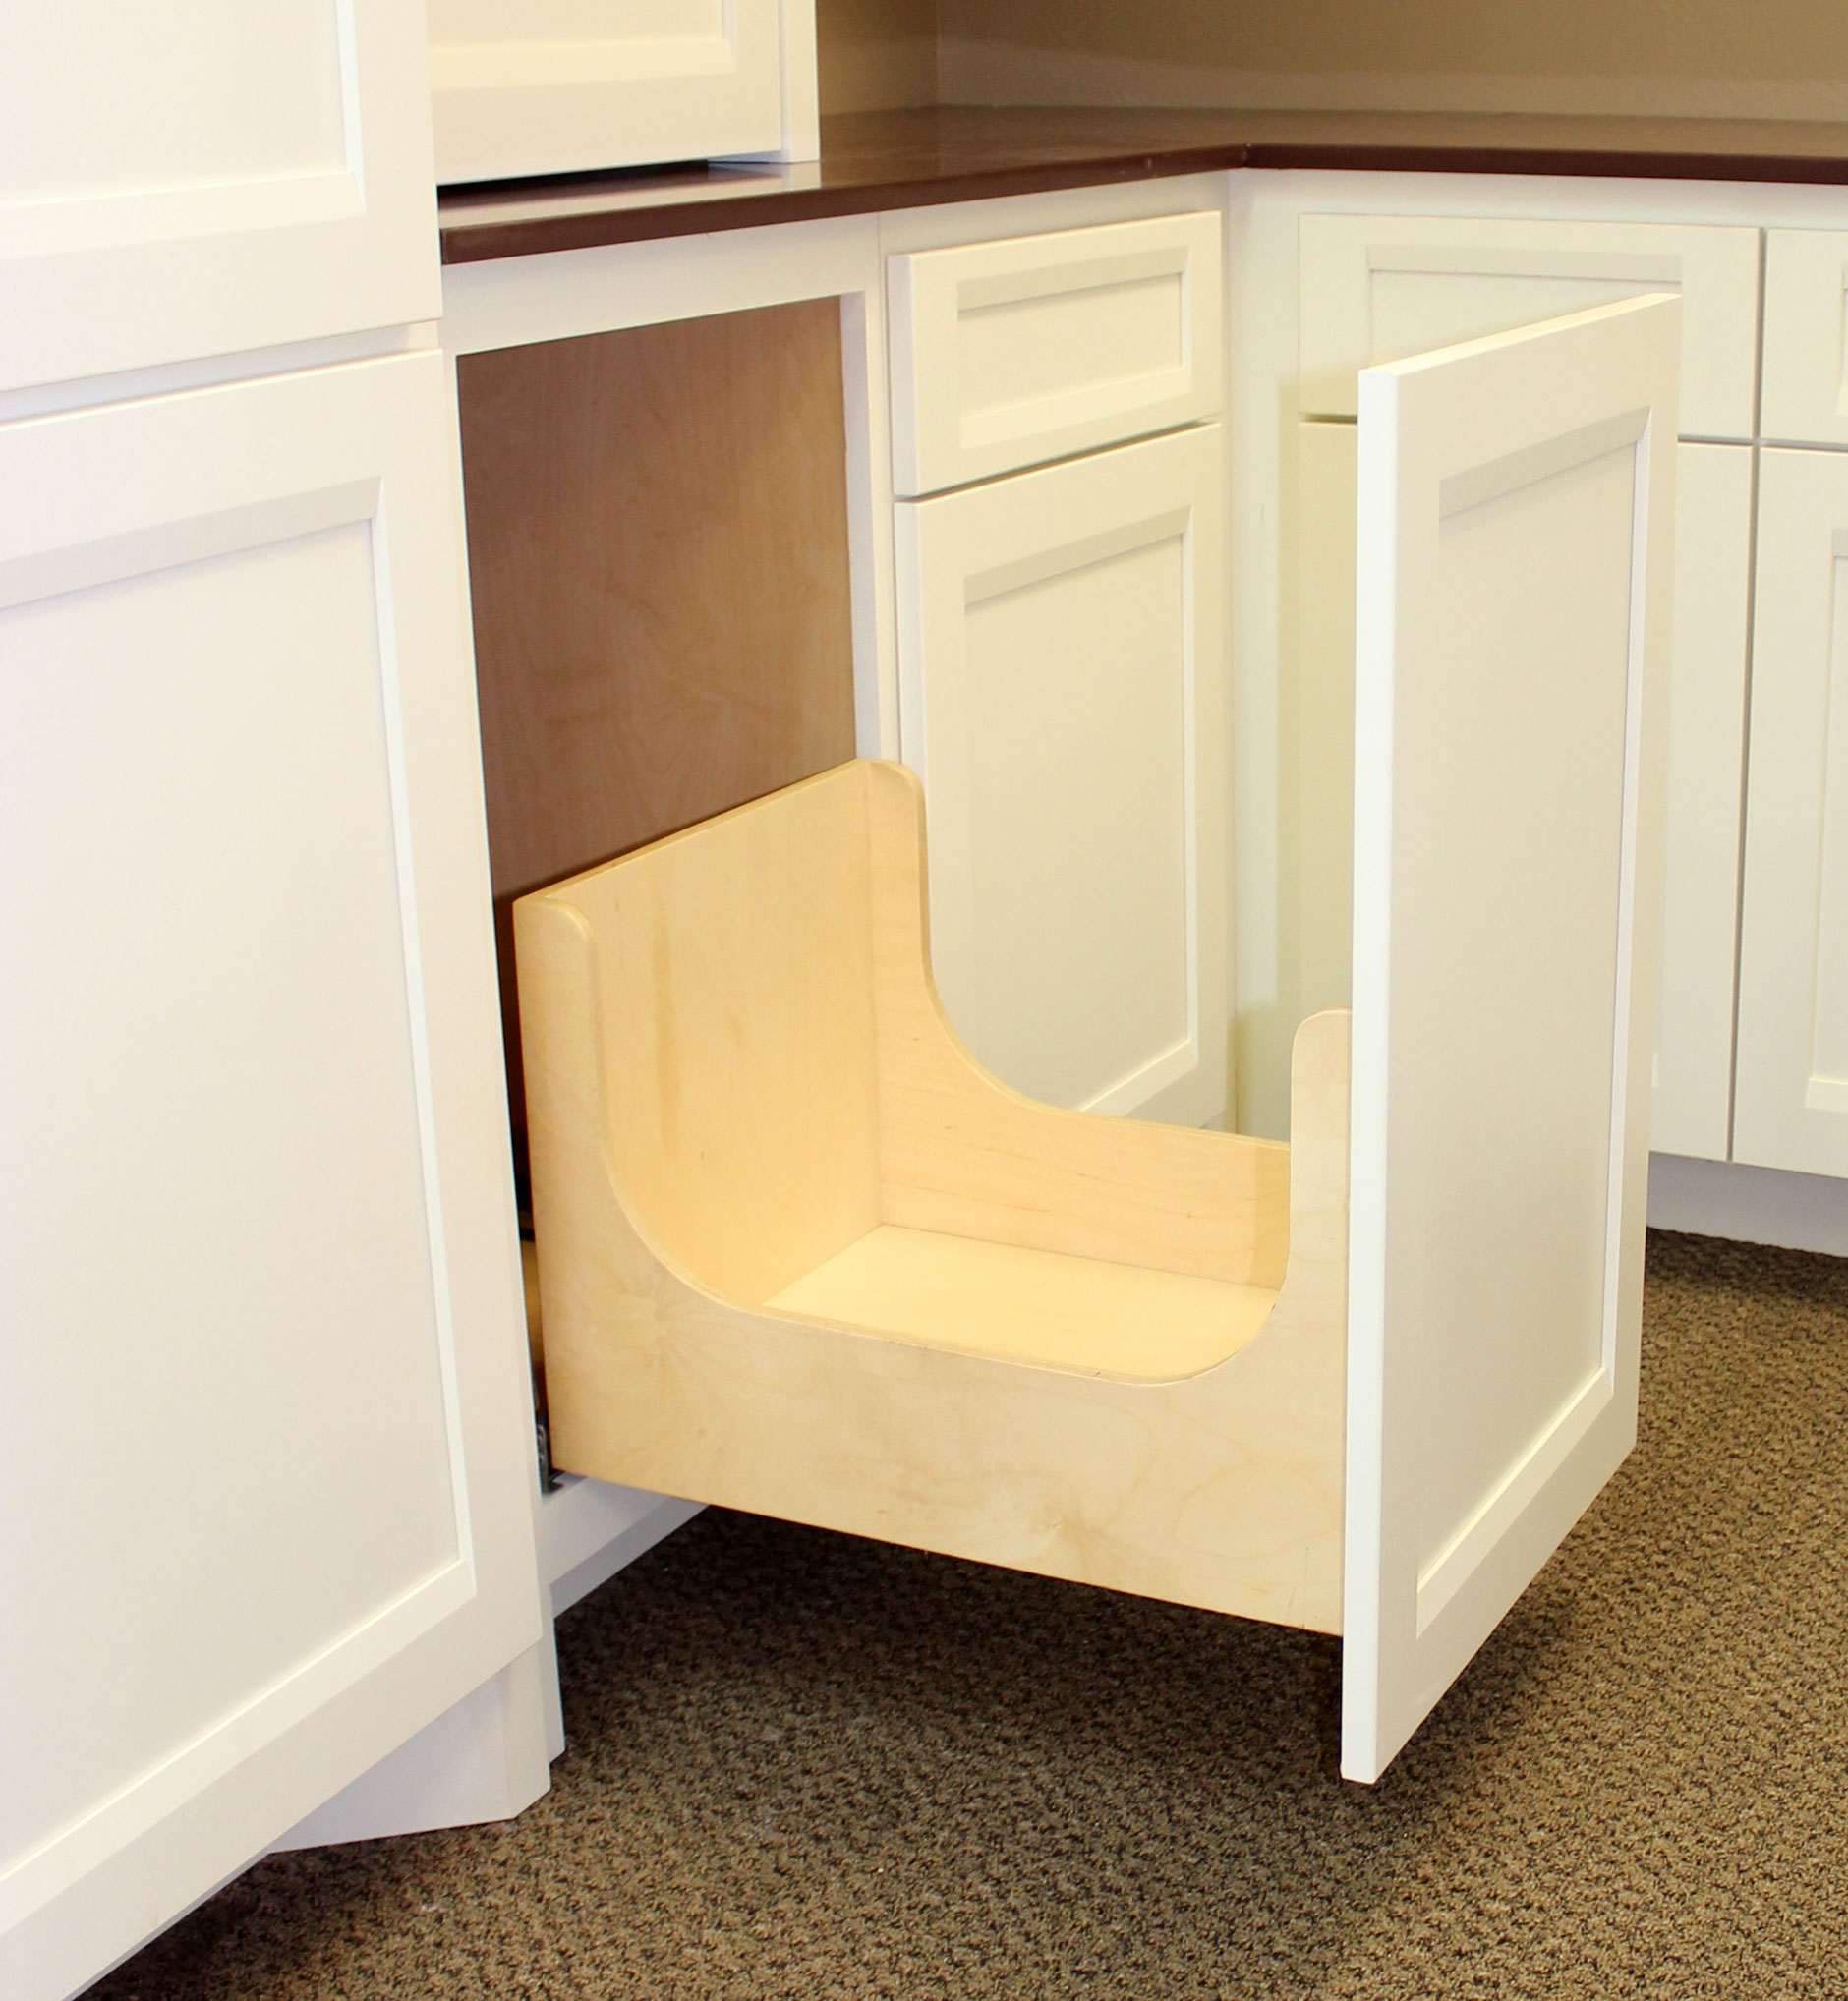 Pull Out Shelves Garbage And Recycling Burrows Cabinets Central Texas Builder Direct Custom Cabinets